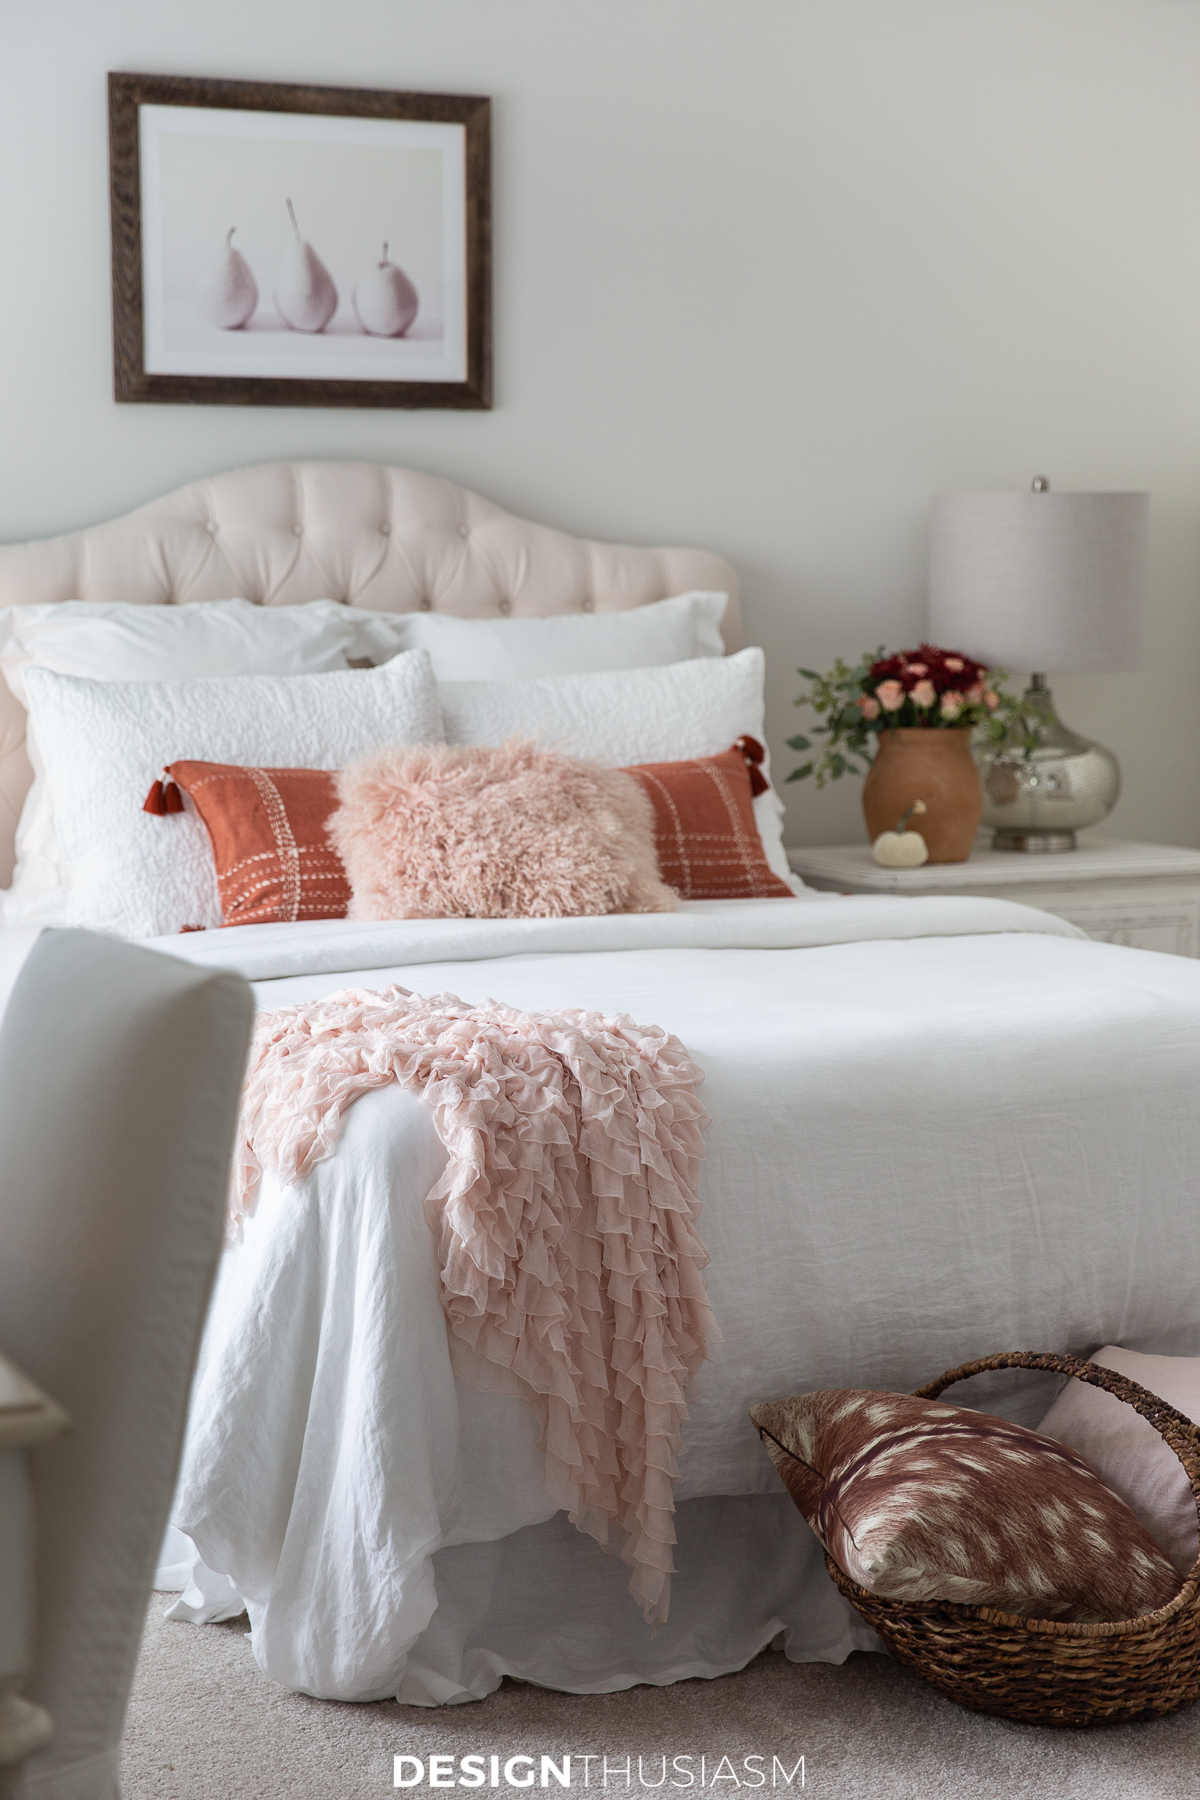 Fall bedroom decor in a white bedroom